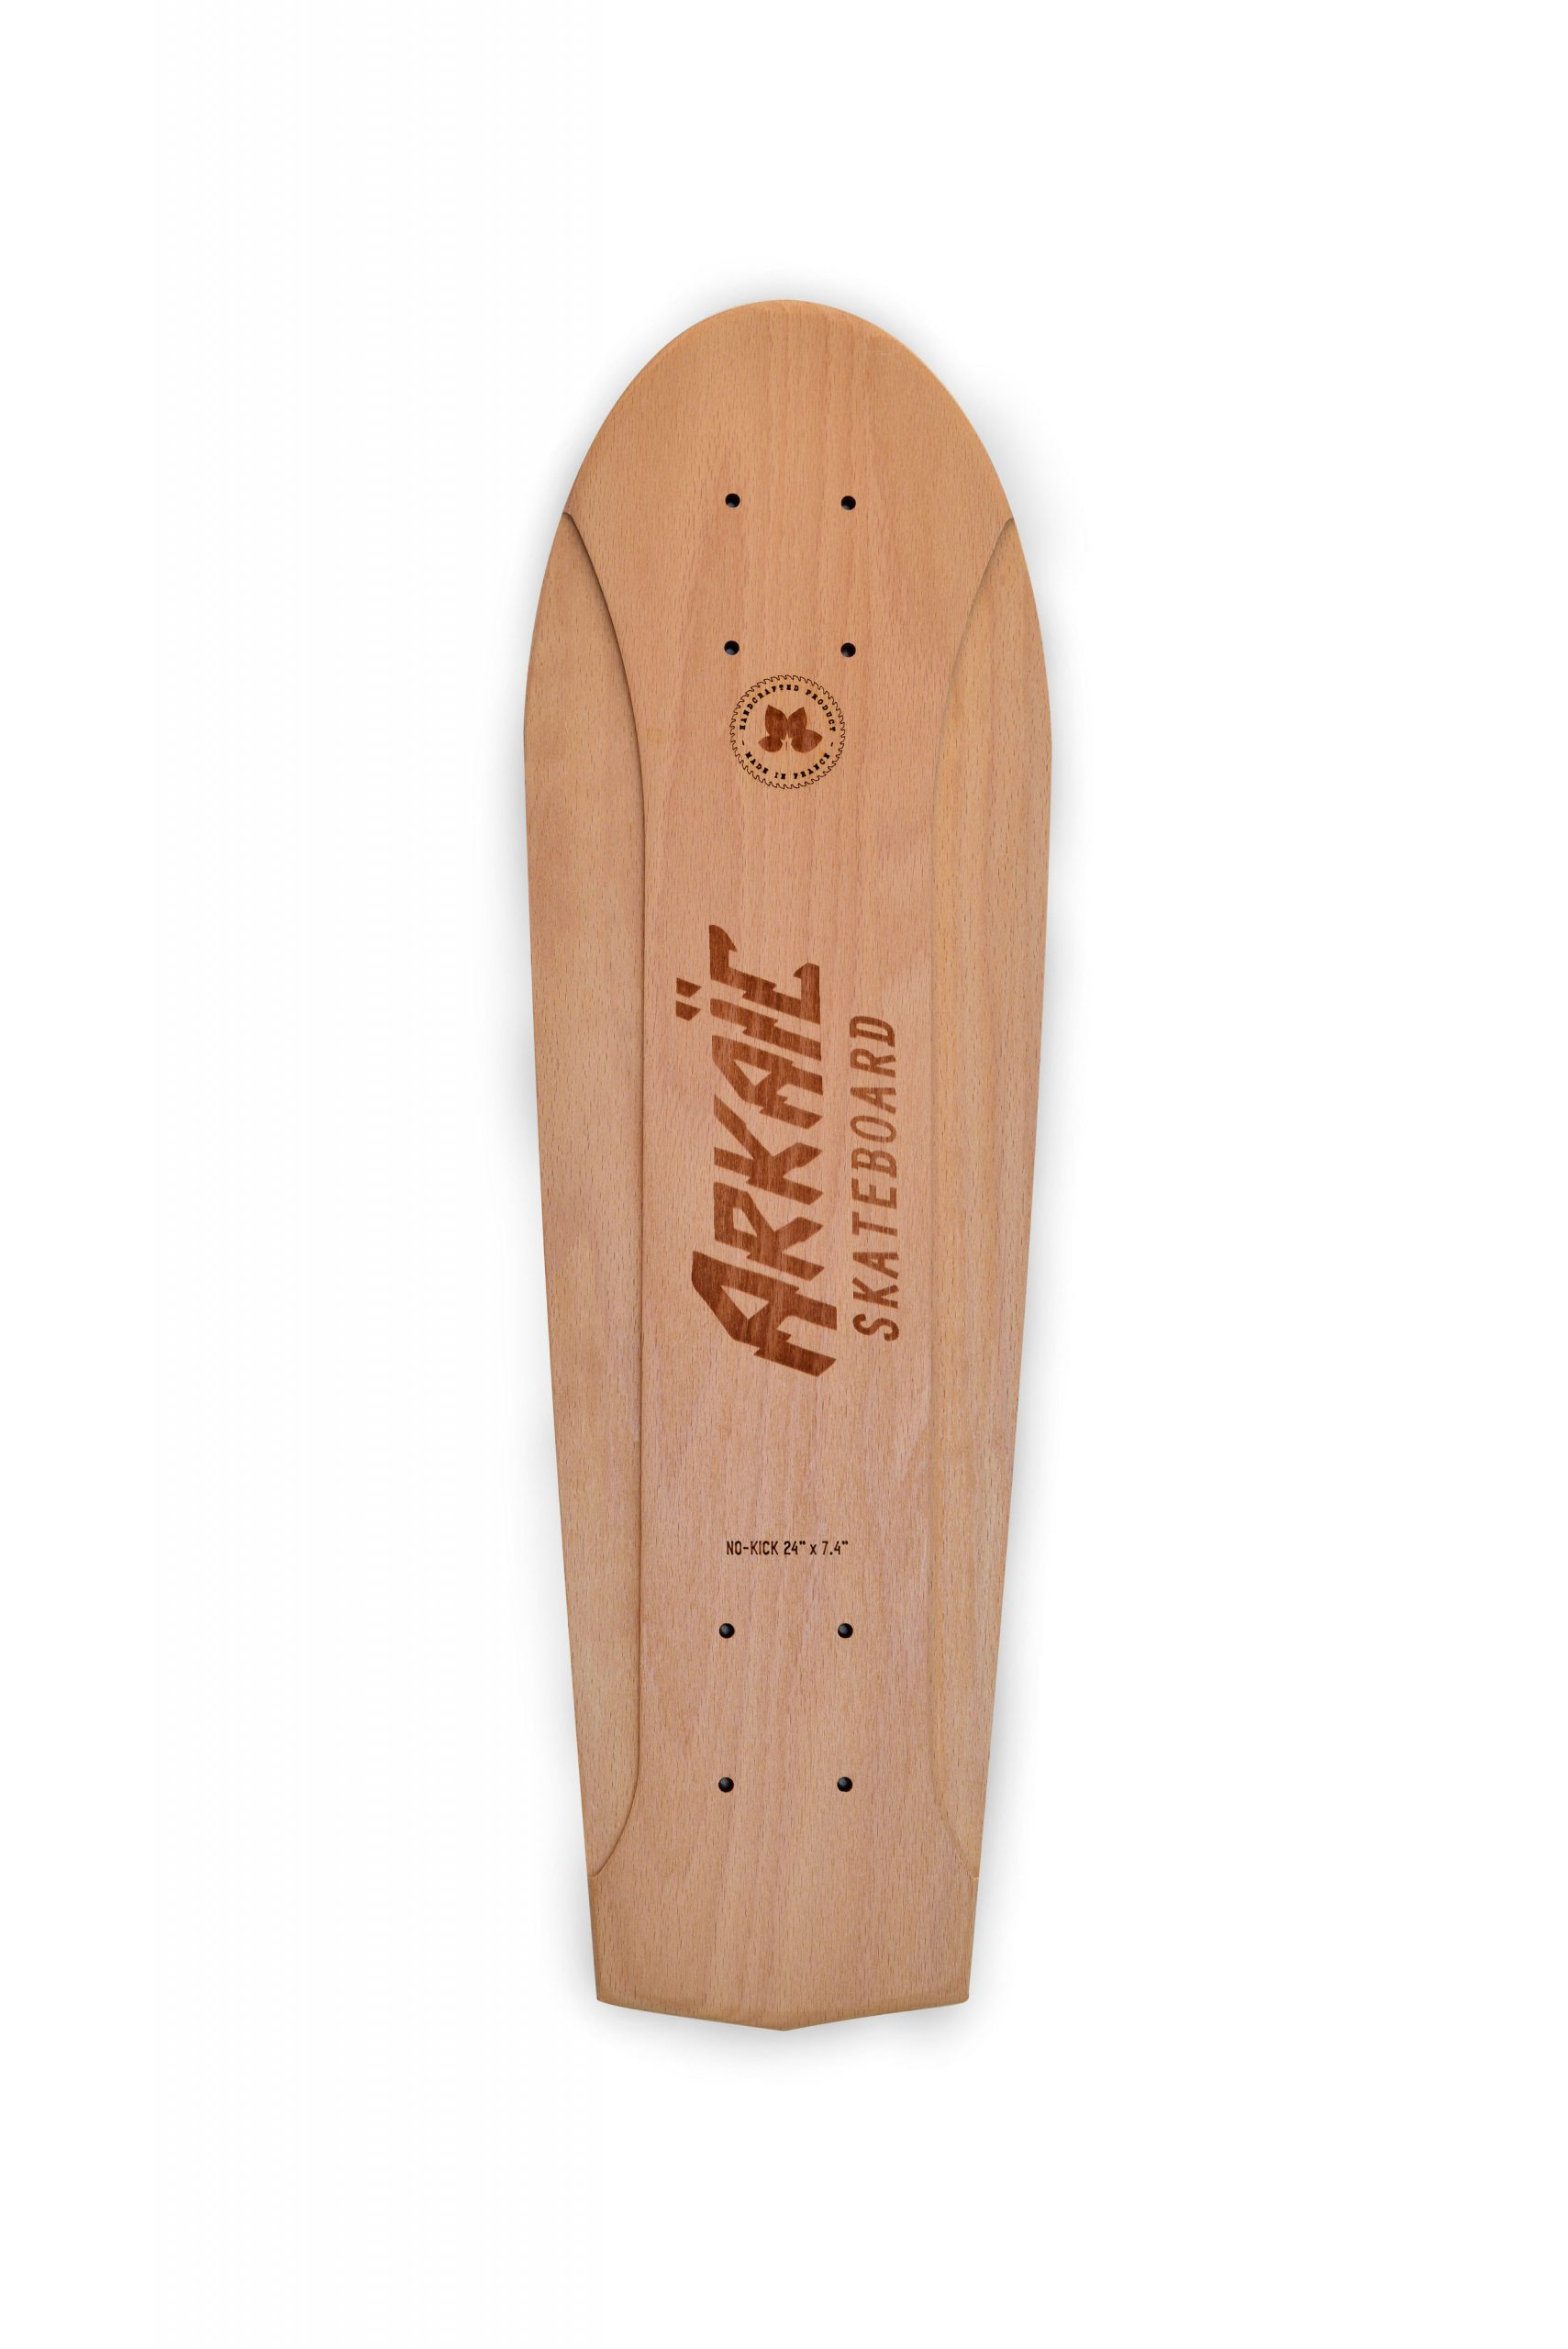 No-kick vintage skateboard arkaic skateboard chillboard cruiser made in france arkaic concept